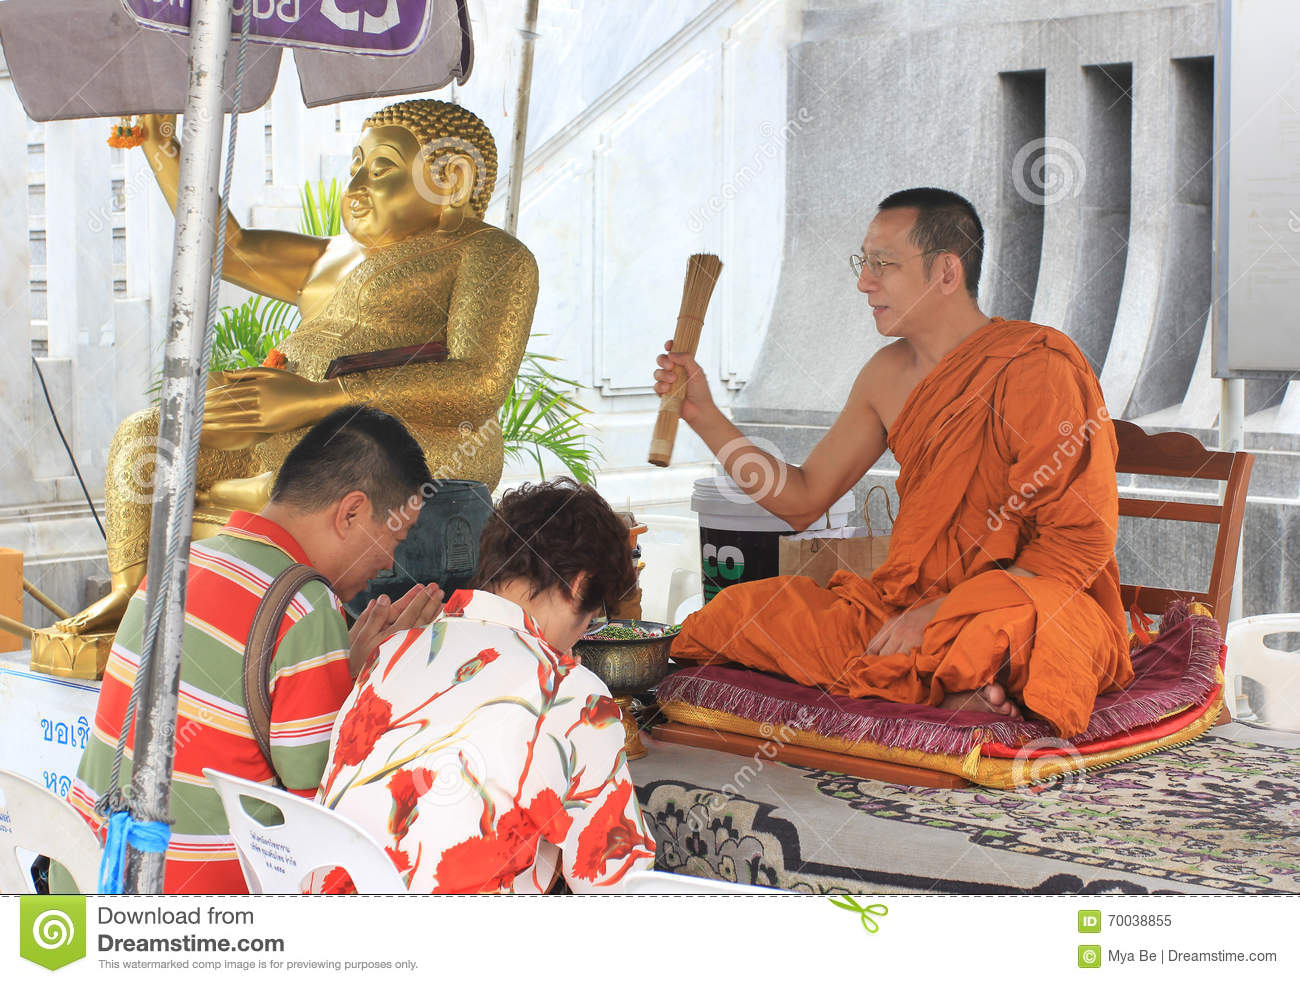 buddhist single men in temple This site might help you re: what do you do in a buddhist temple compared to the worship in a christian chruch i am doing a project concernig buddha, and to get more into my project i was hoping to get my self more involved and aware of the goings on in th.